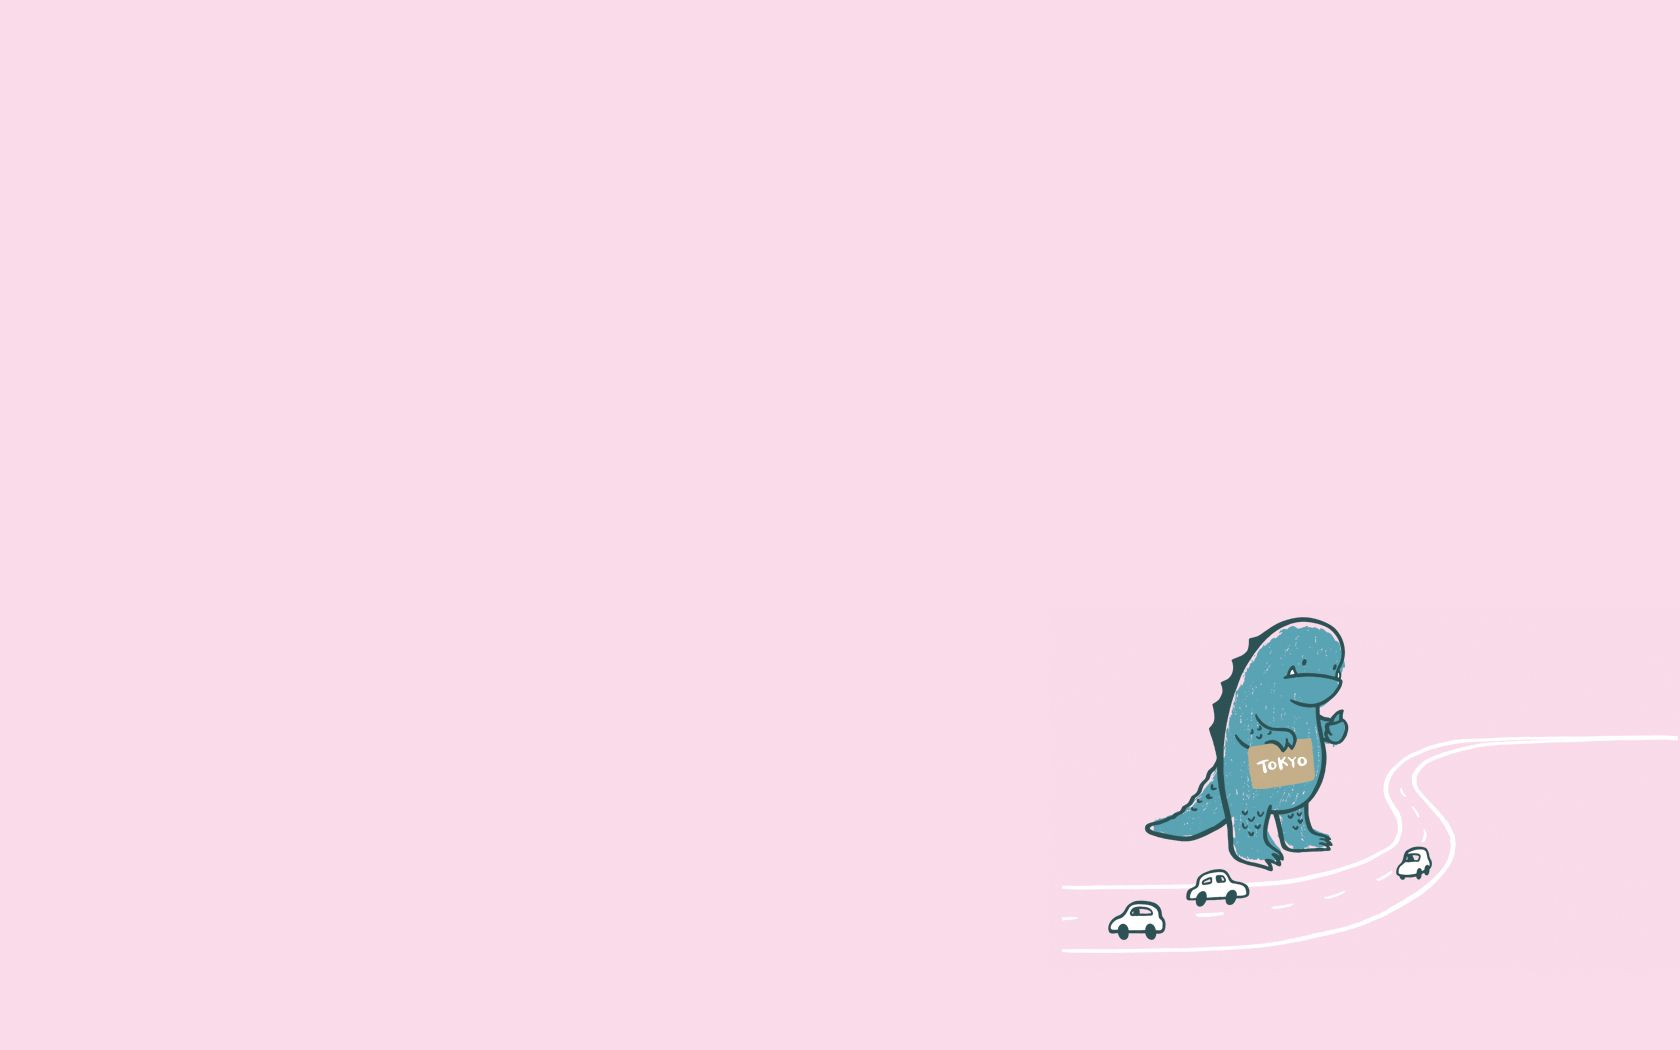 Godzilla Cute Laptop Wallpaper Cute Desktop Wallpaper Computer Wallpaper Desktop Wallpapers